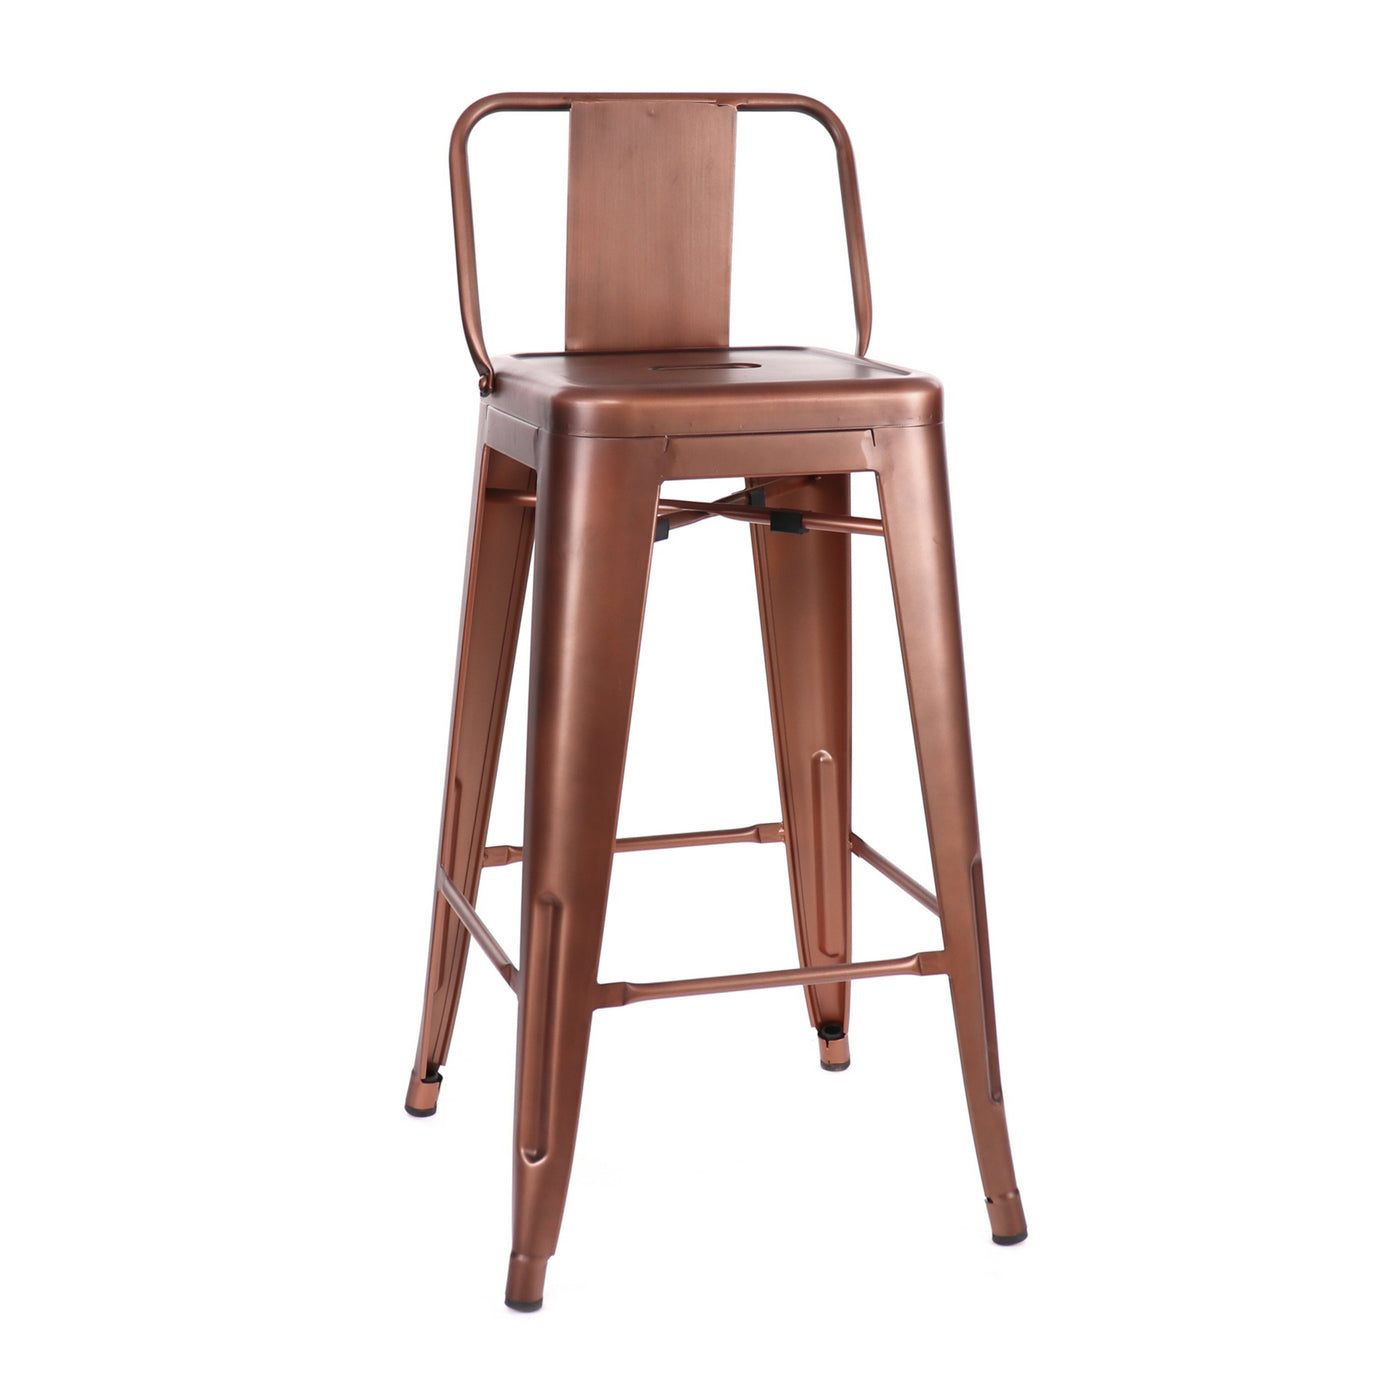 Design Lab MN LS-9102-COPLB Dreux Vintage Copper Low Back Counter Stool Set of 4